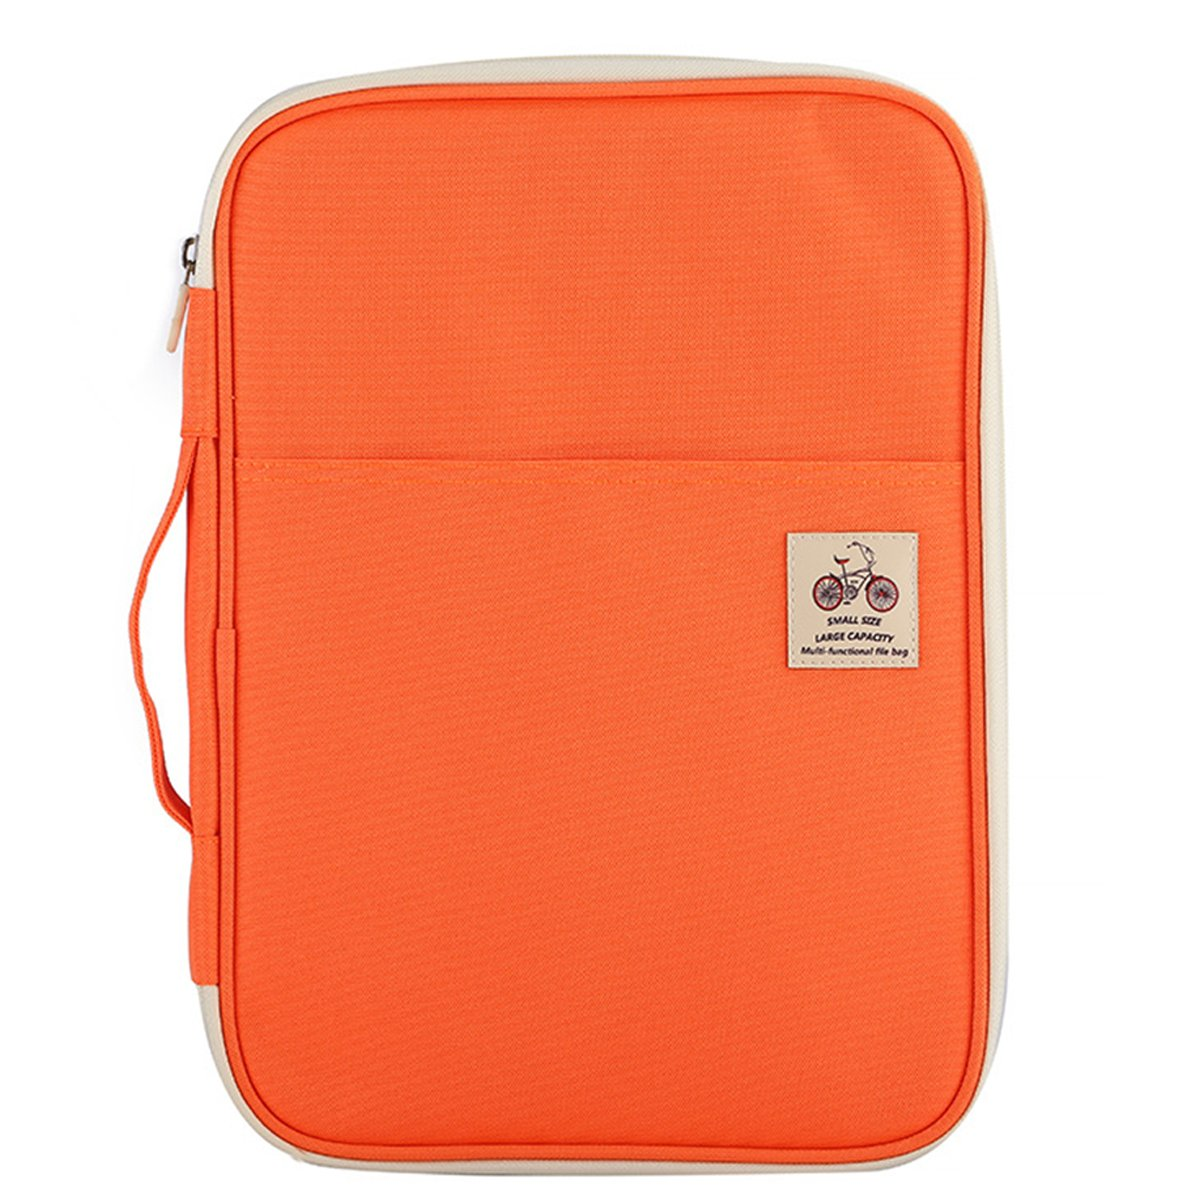 JAKAGO Warterproof A4 File Portfolio Document Folder Notepad Carrying Cases Passport Holder Tablet Sleeve Charge Cable Storage Bag for Travel Office Business Holiday Meeting Interview (Orange)